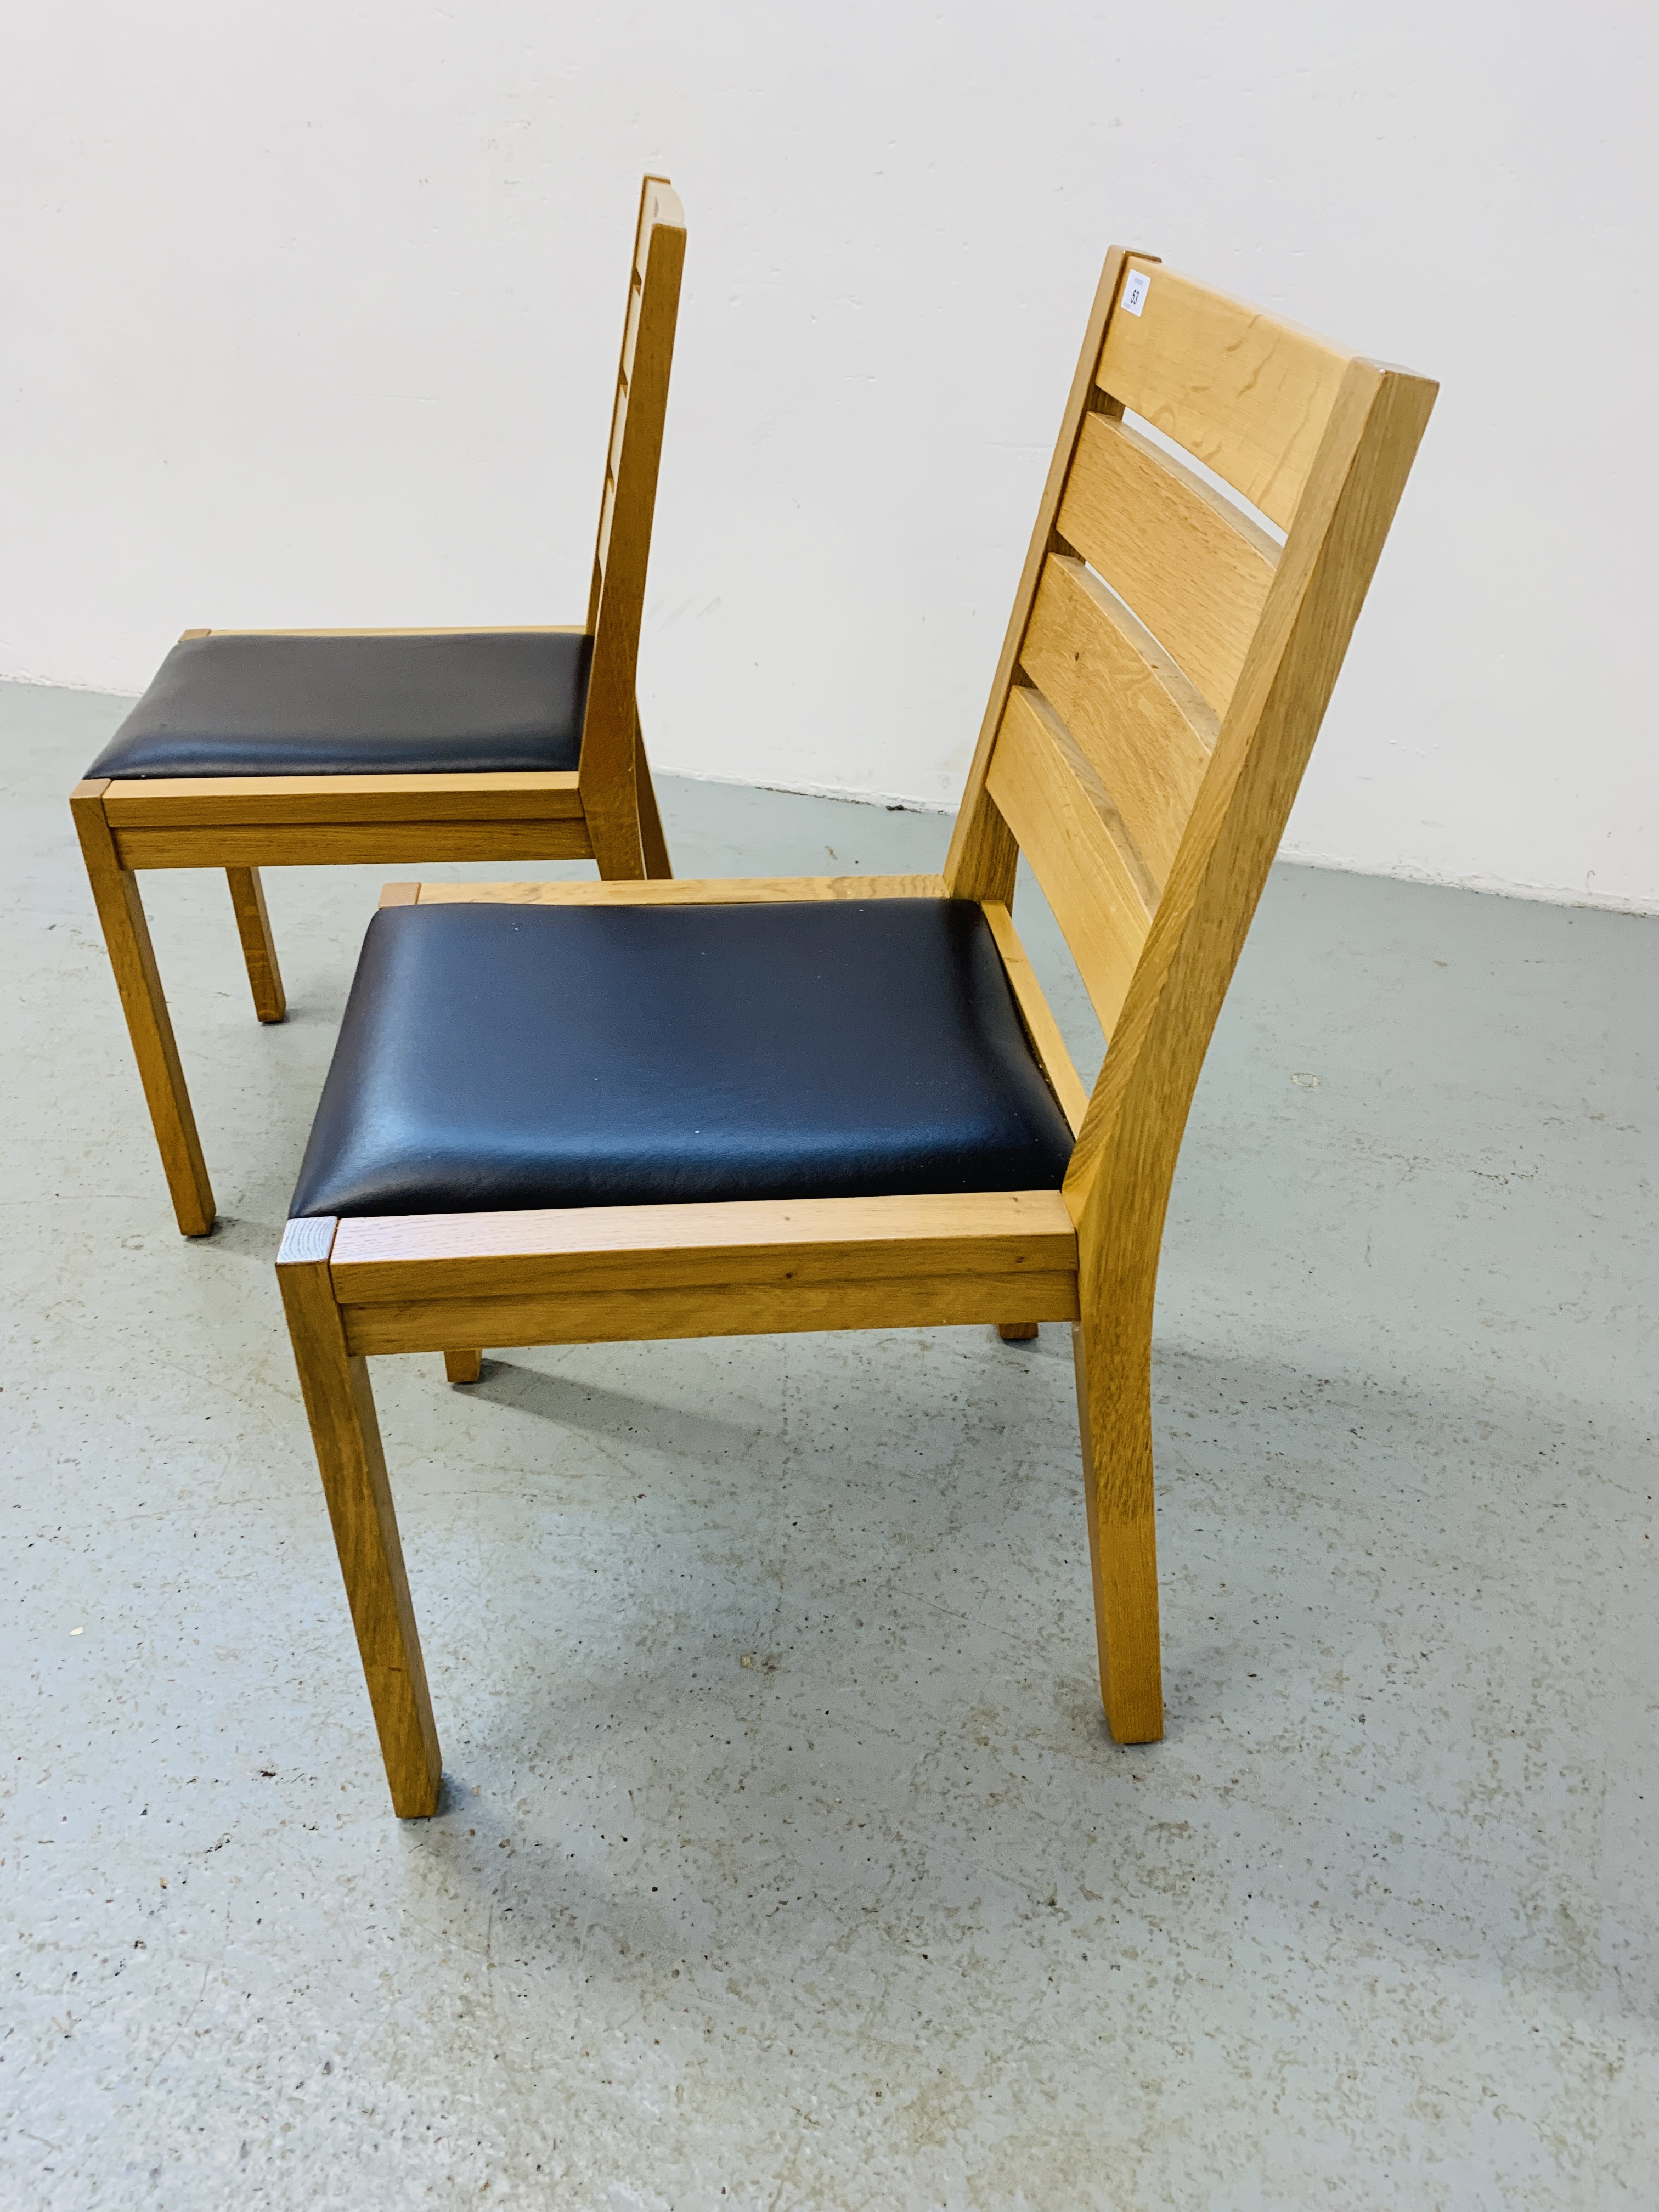 A PAIR OF LIGHT OAK MODERN SIDE CHAIRS - Image 4 of 9